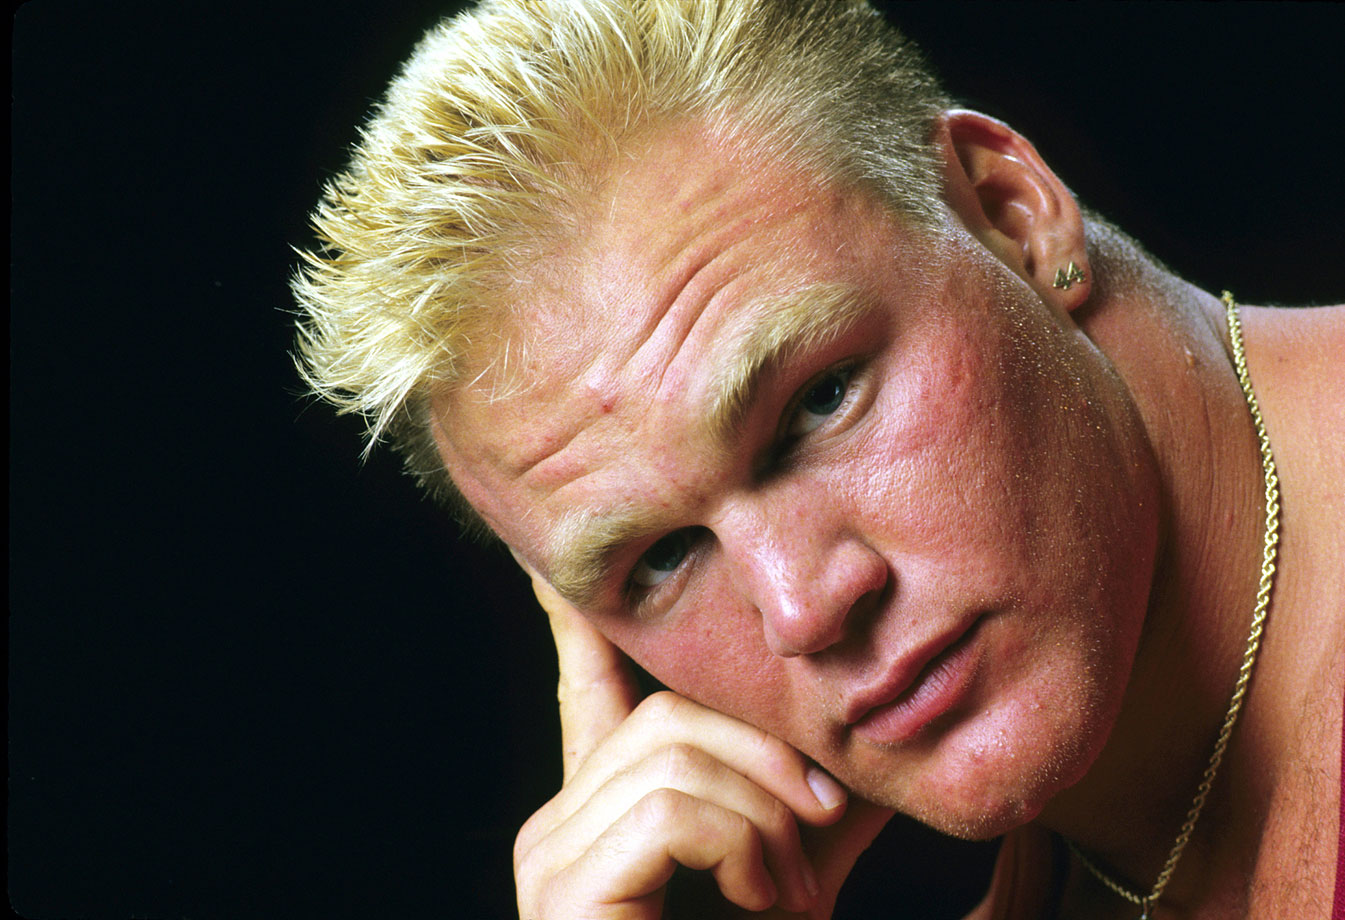 The Boz appears in deep thought during a photo shoot in Norman, Okla.